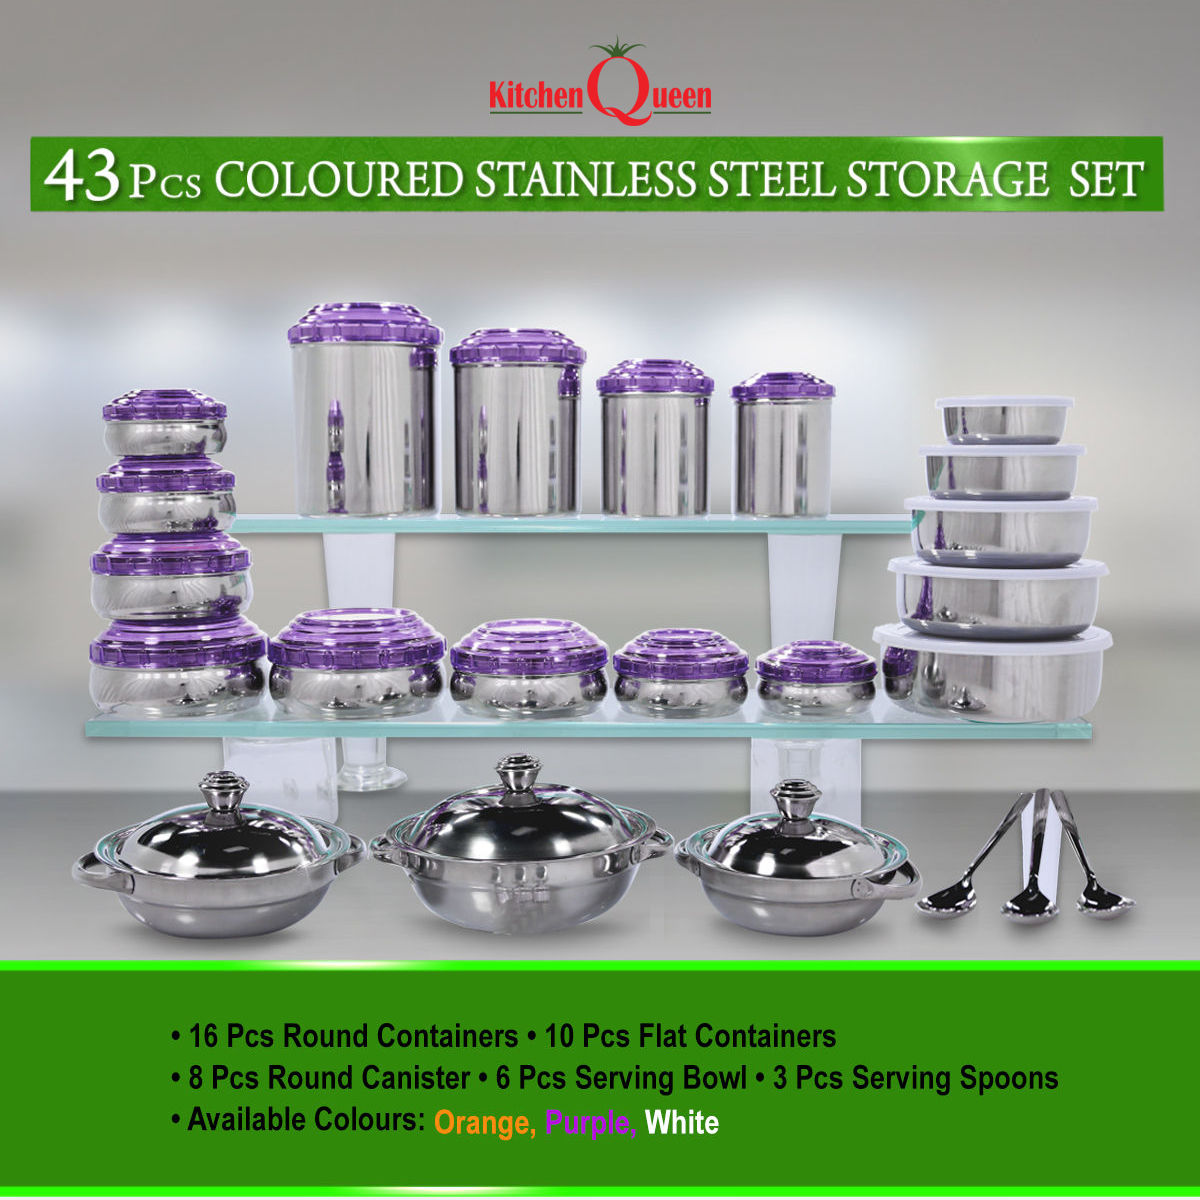 Buy Kitchen Queen 43 Pcs Coloured Stainless Steel Storage